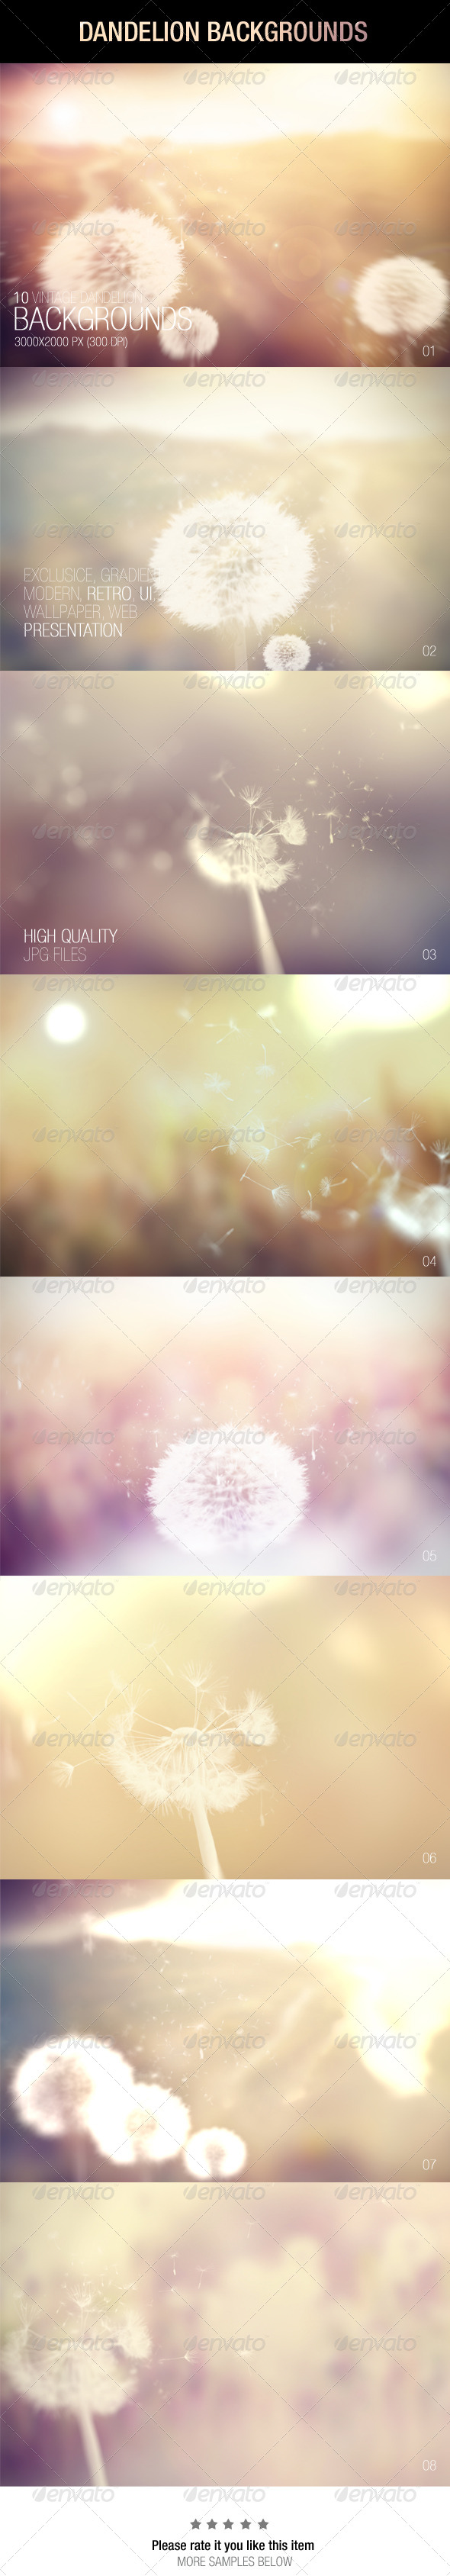 GraphicRiver Dandelion Backgrounds 7363341